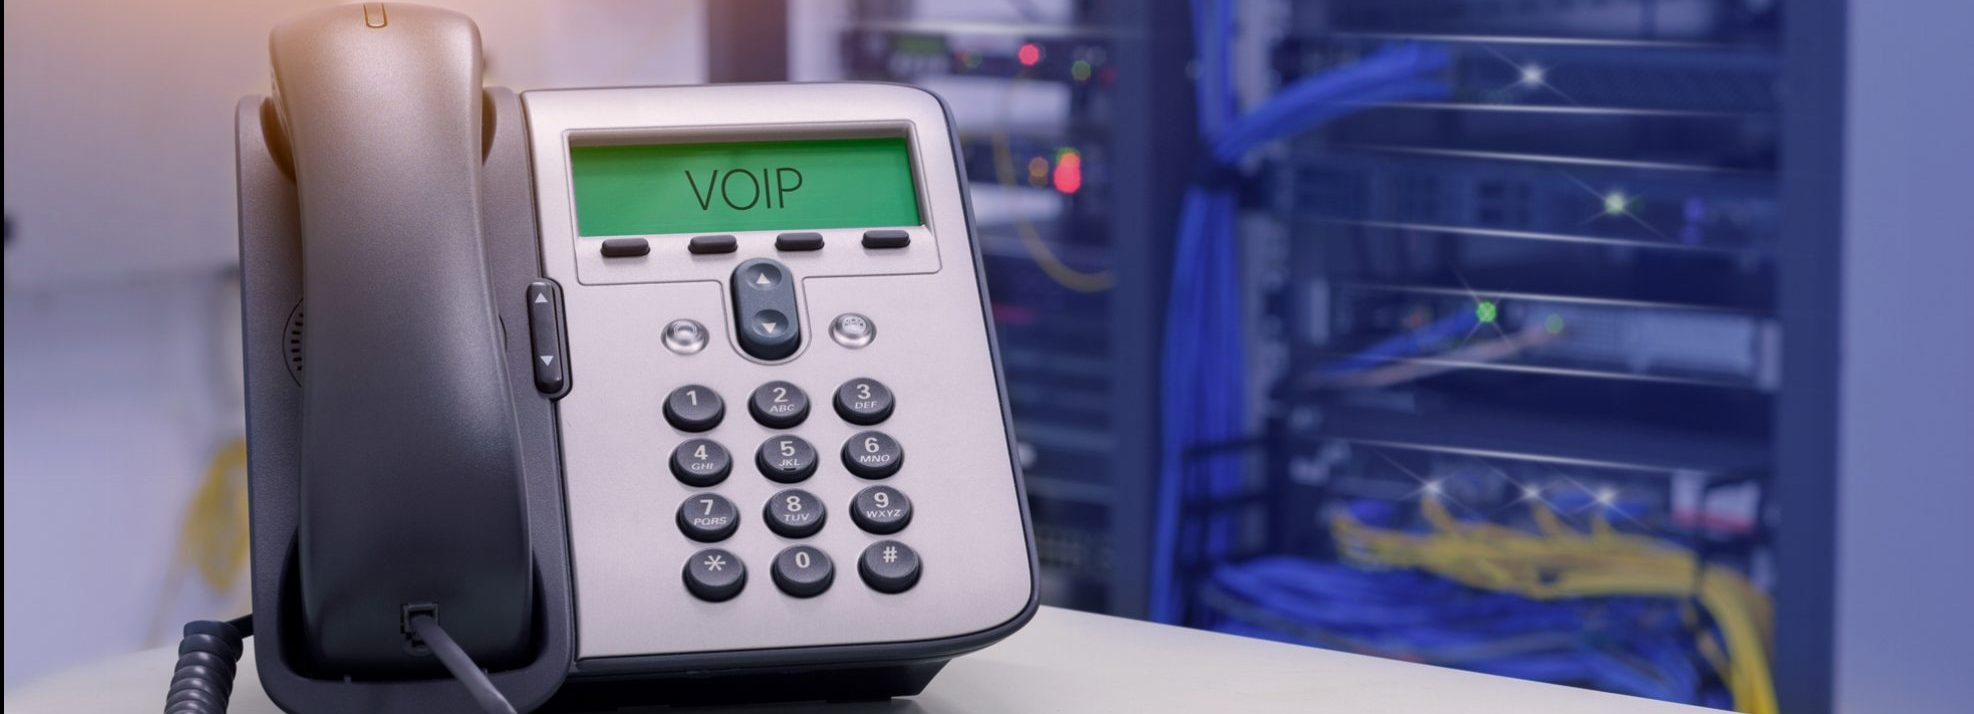 VOIP: The Right Call For Your Business - Pretect